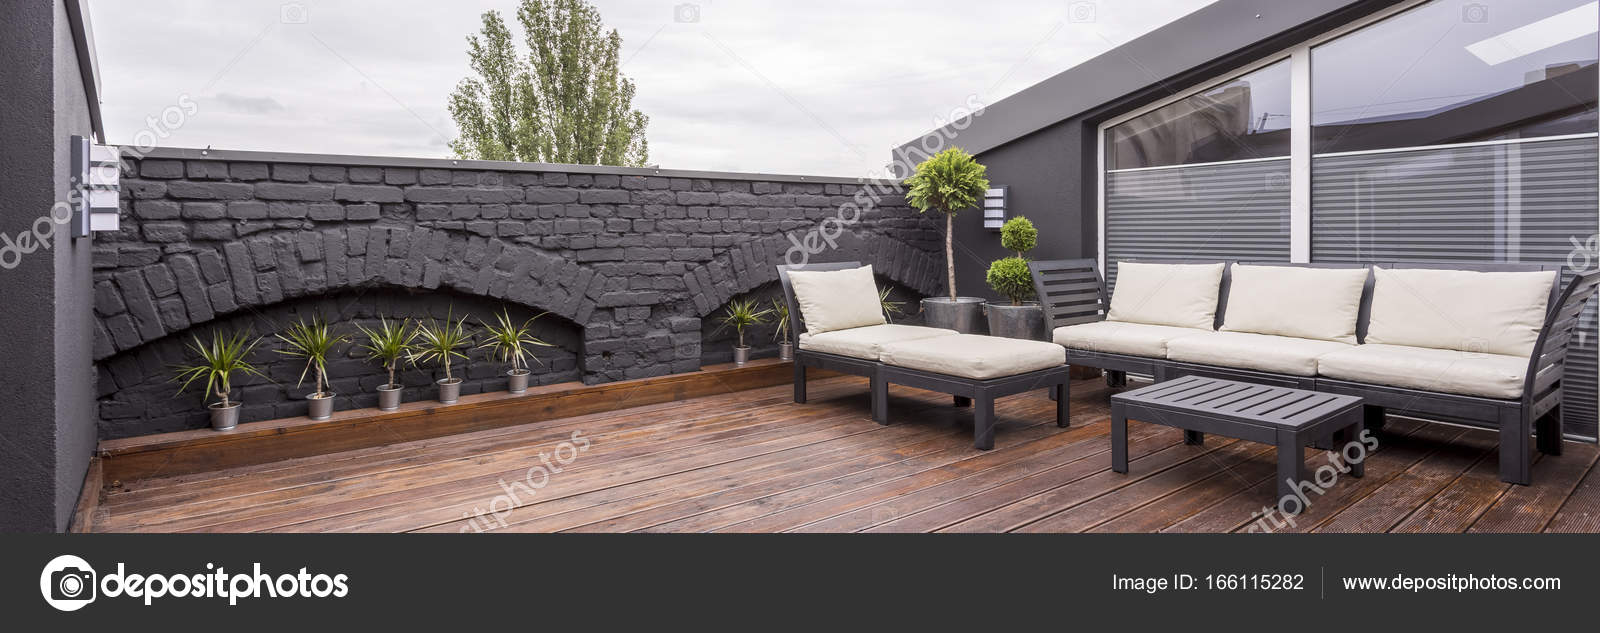 Rooftop Terrace With Wooden Flooring U2014 Stock Photo